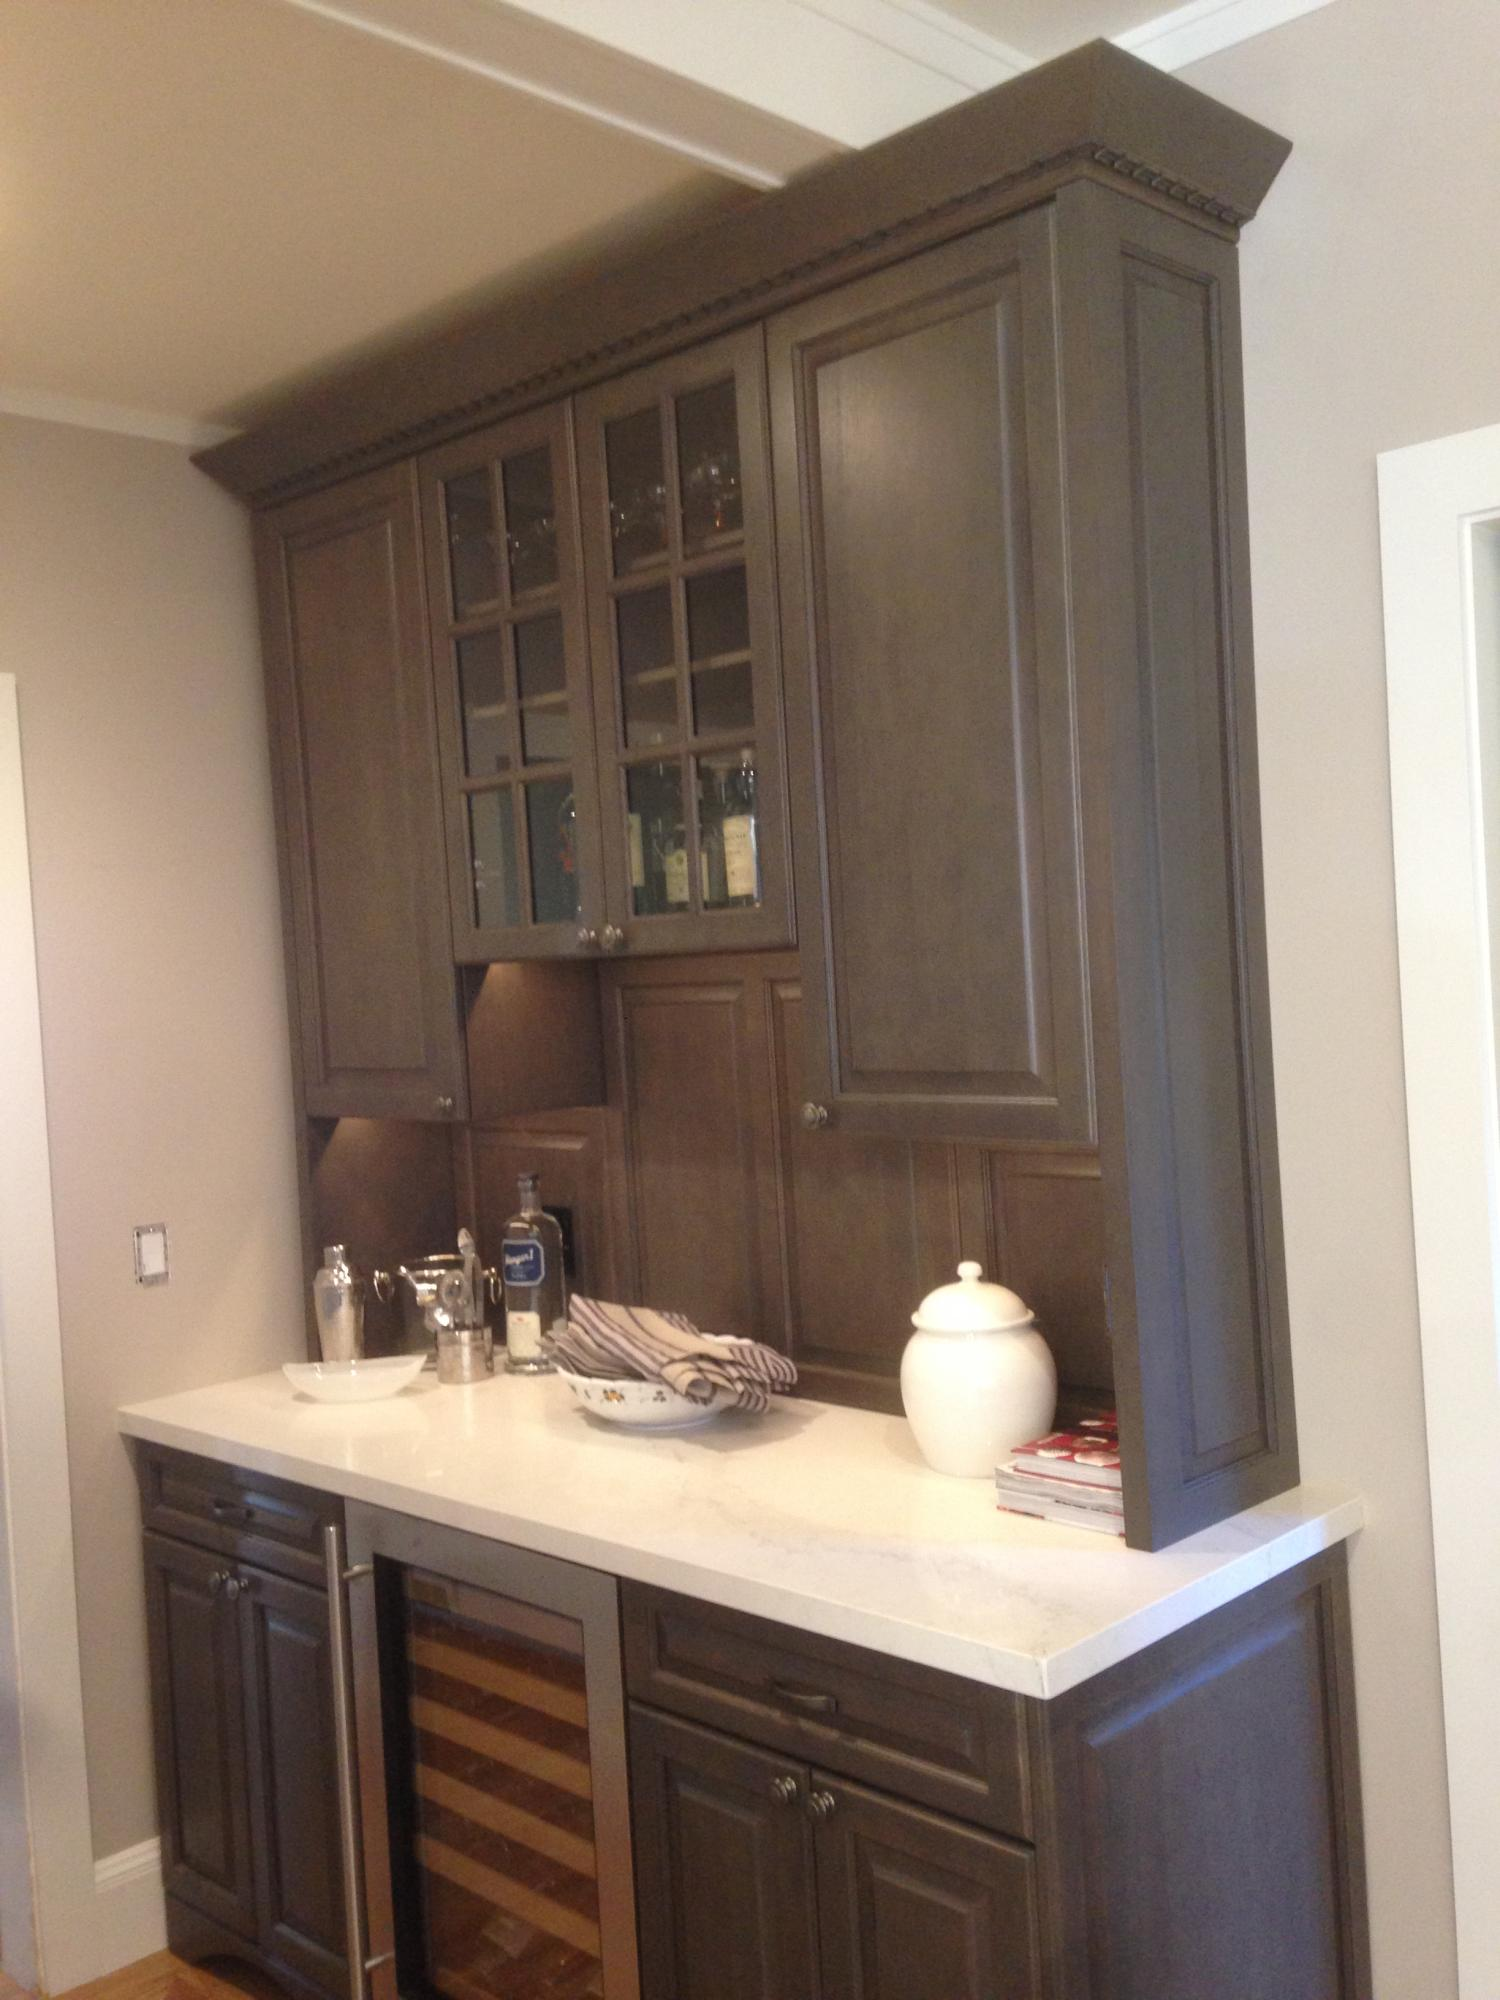 Home Remodeling, Remodeling Contractors, Building Contractor - SAN ...